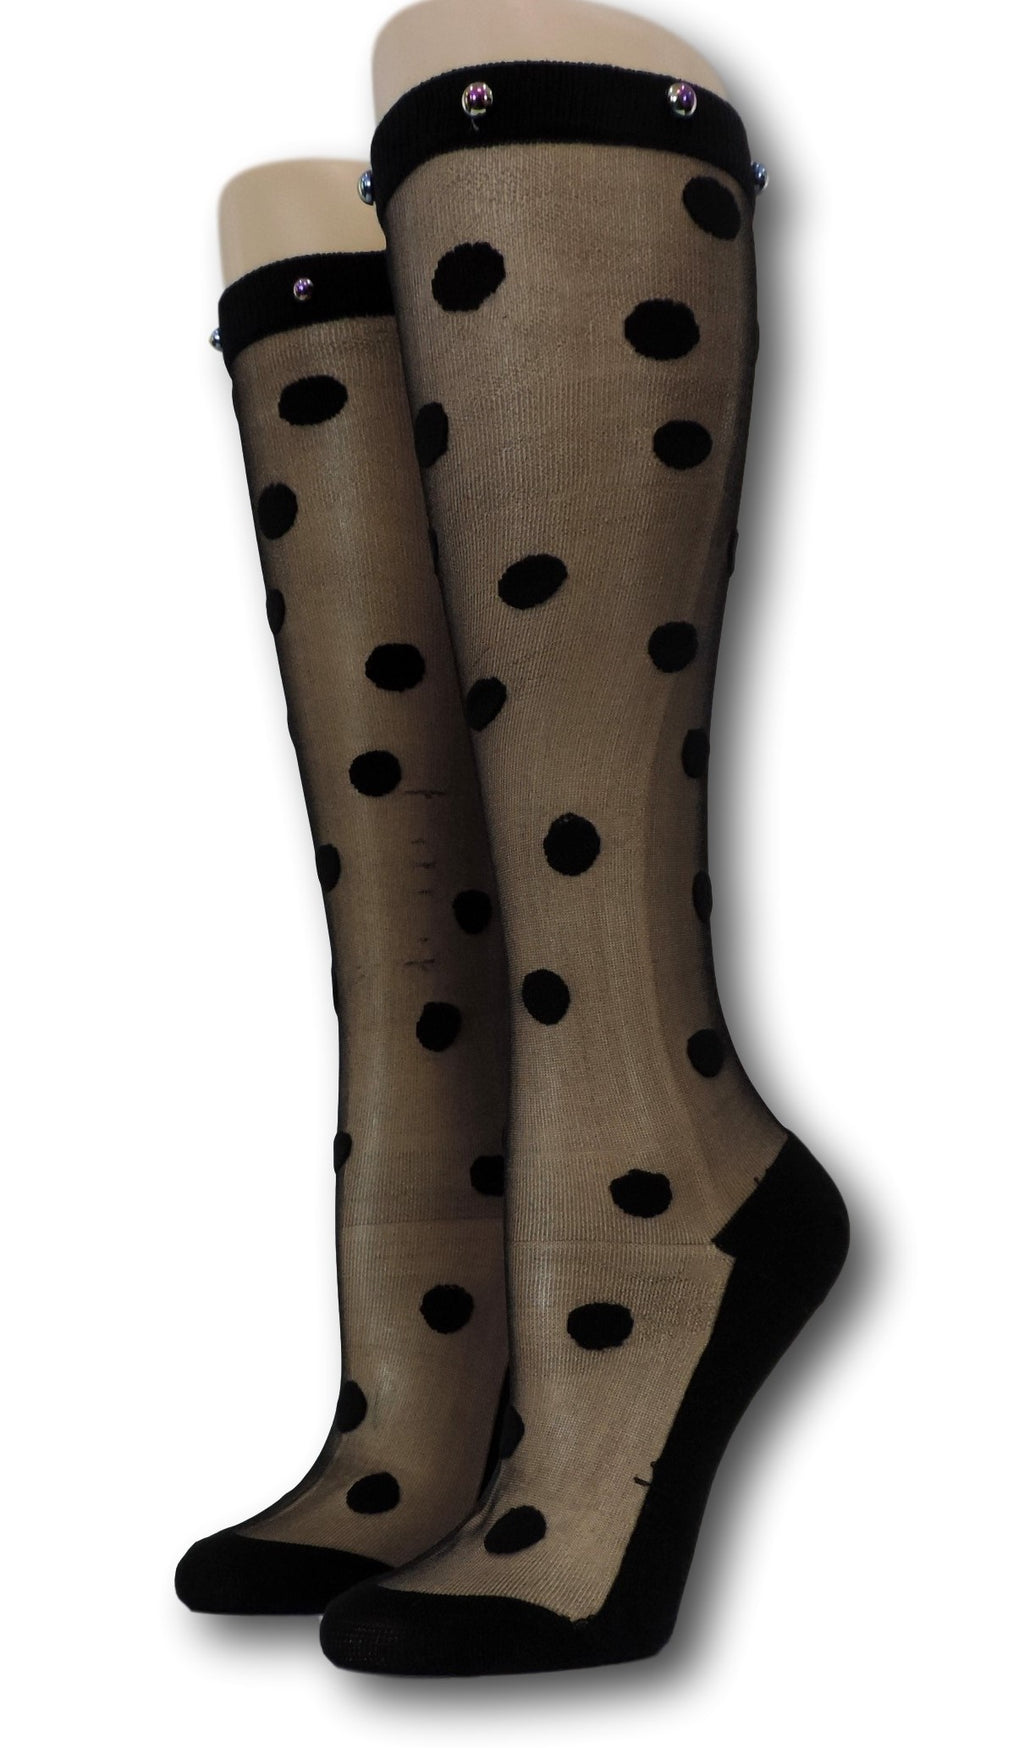 Charcoal Polka Knee High Sheer Socks with beads